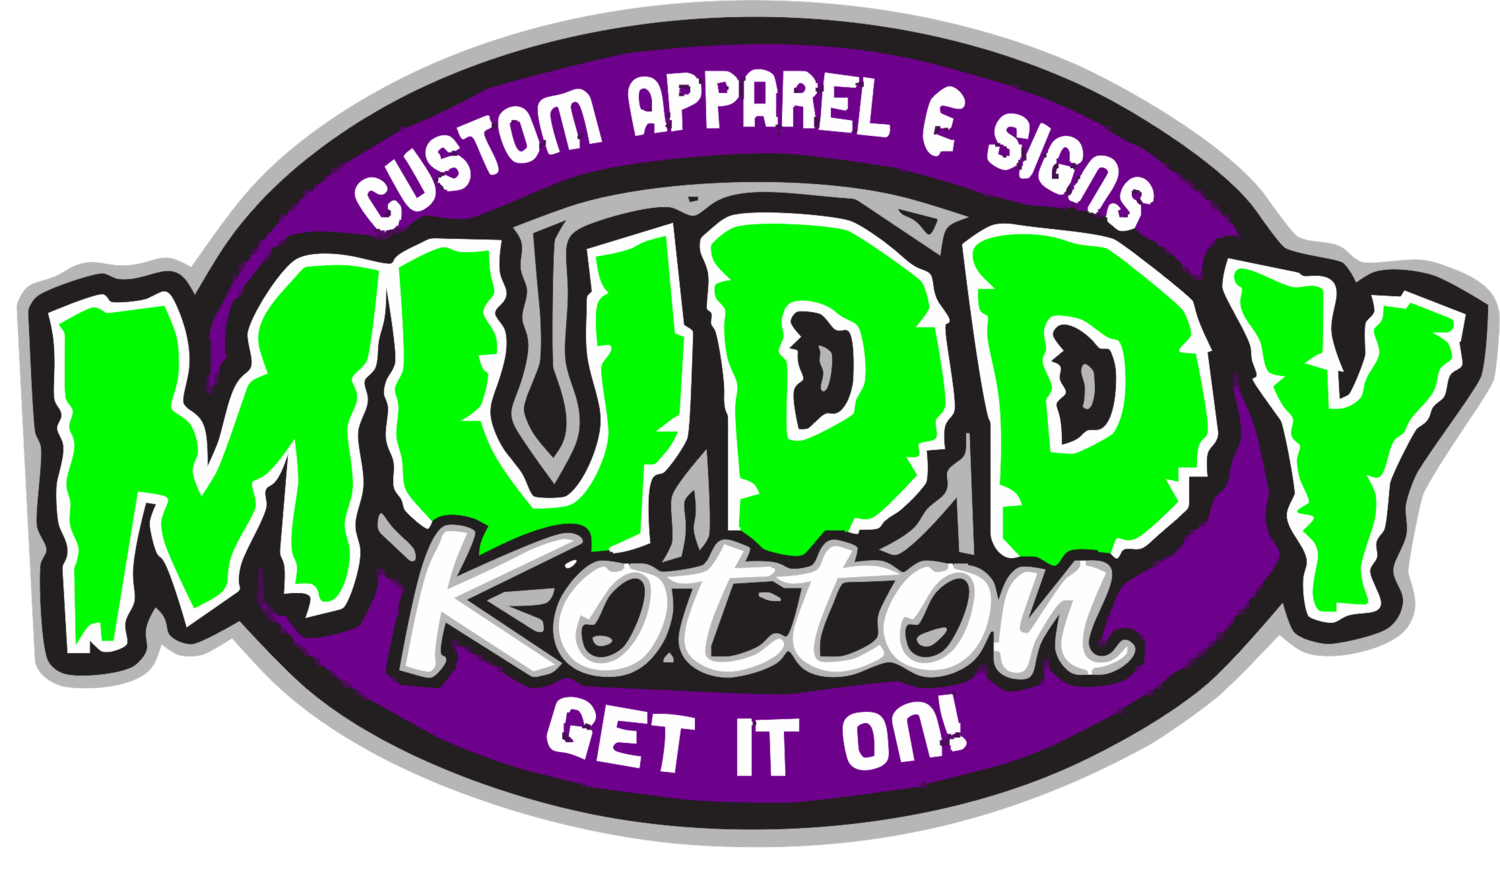 Muddy Kotton